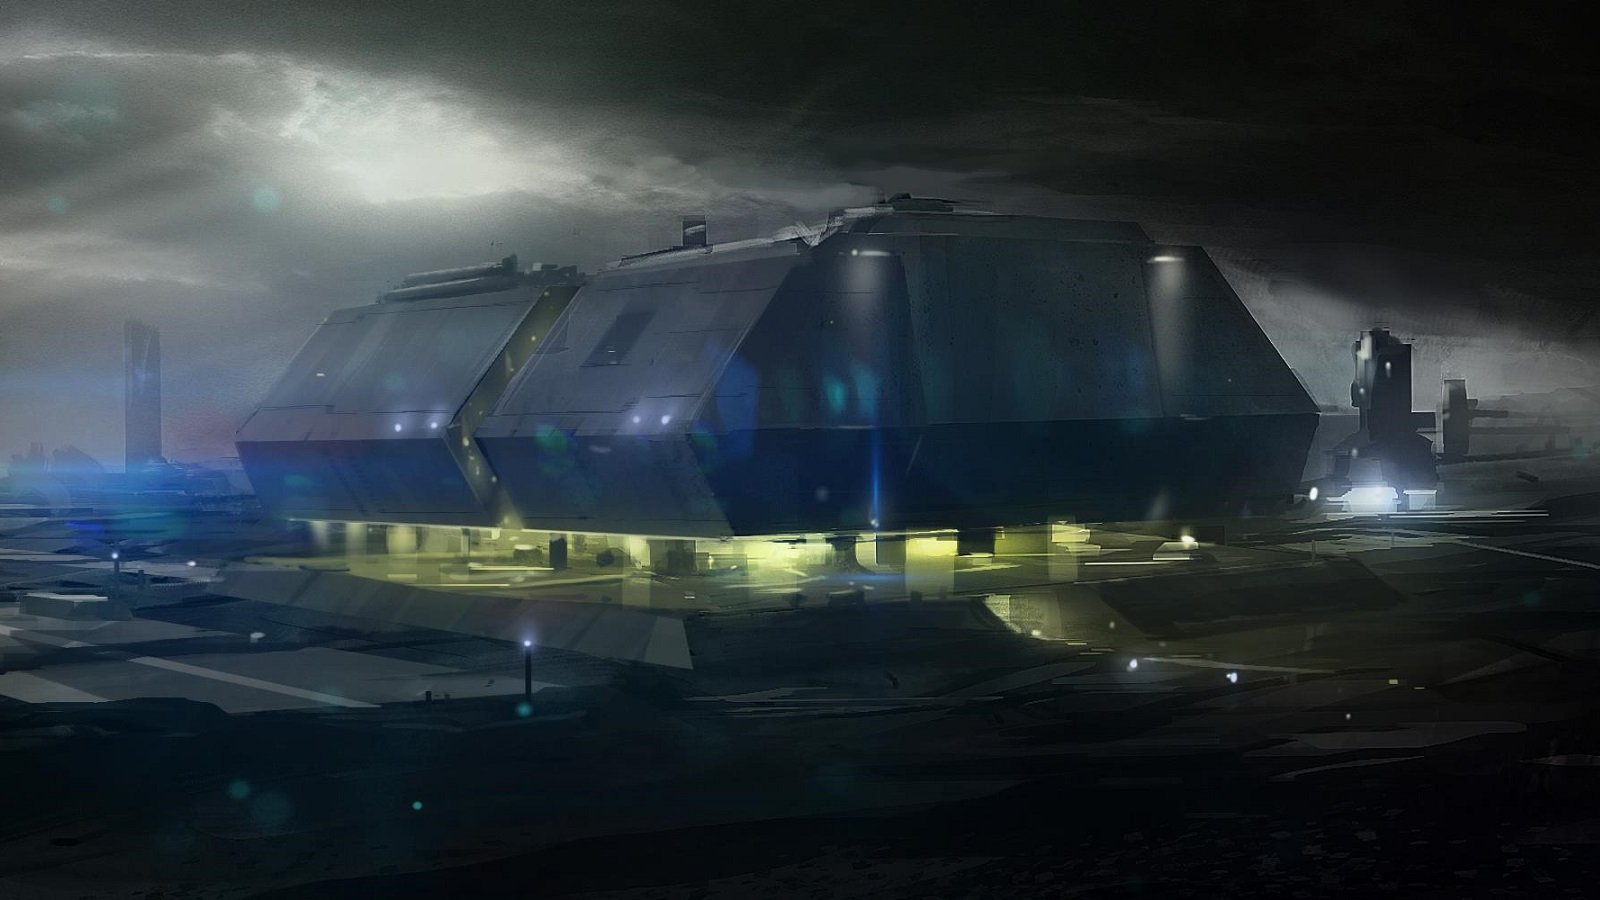 1600x900 - Sci Fi Building Wallpapers 8